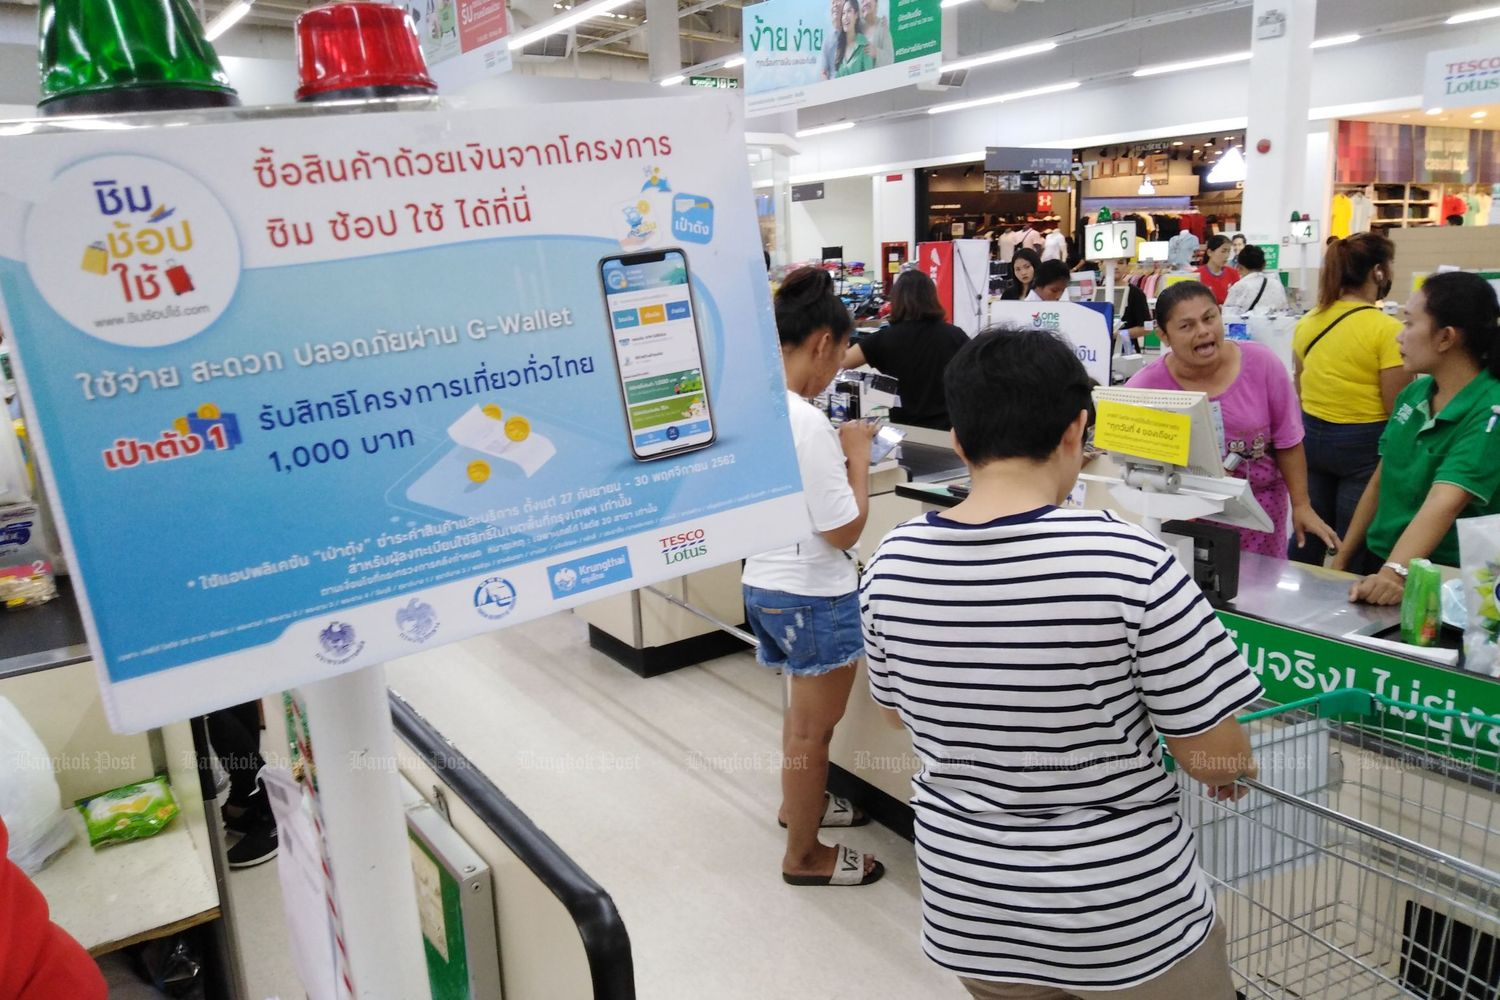 A banner at a Tesco Lotus hypermarket promotes the Taste-Shop-Spend scheme to lure shoppers on Oct 1. (Photo by Pornprom Sattrabhaya)